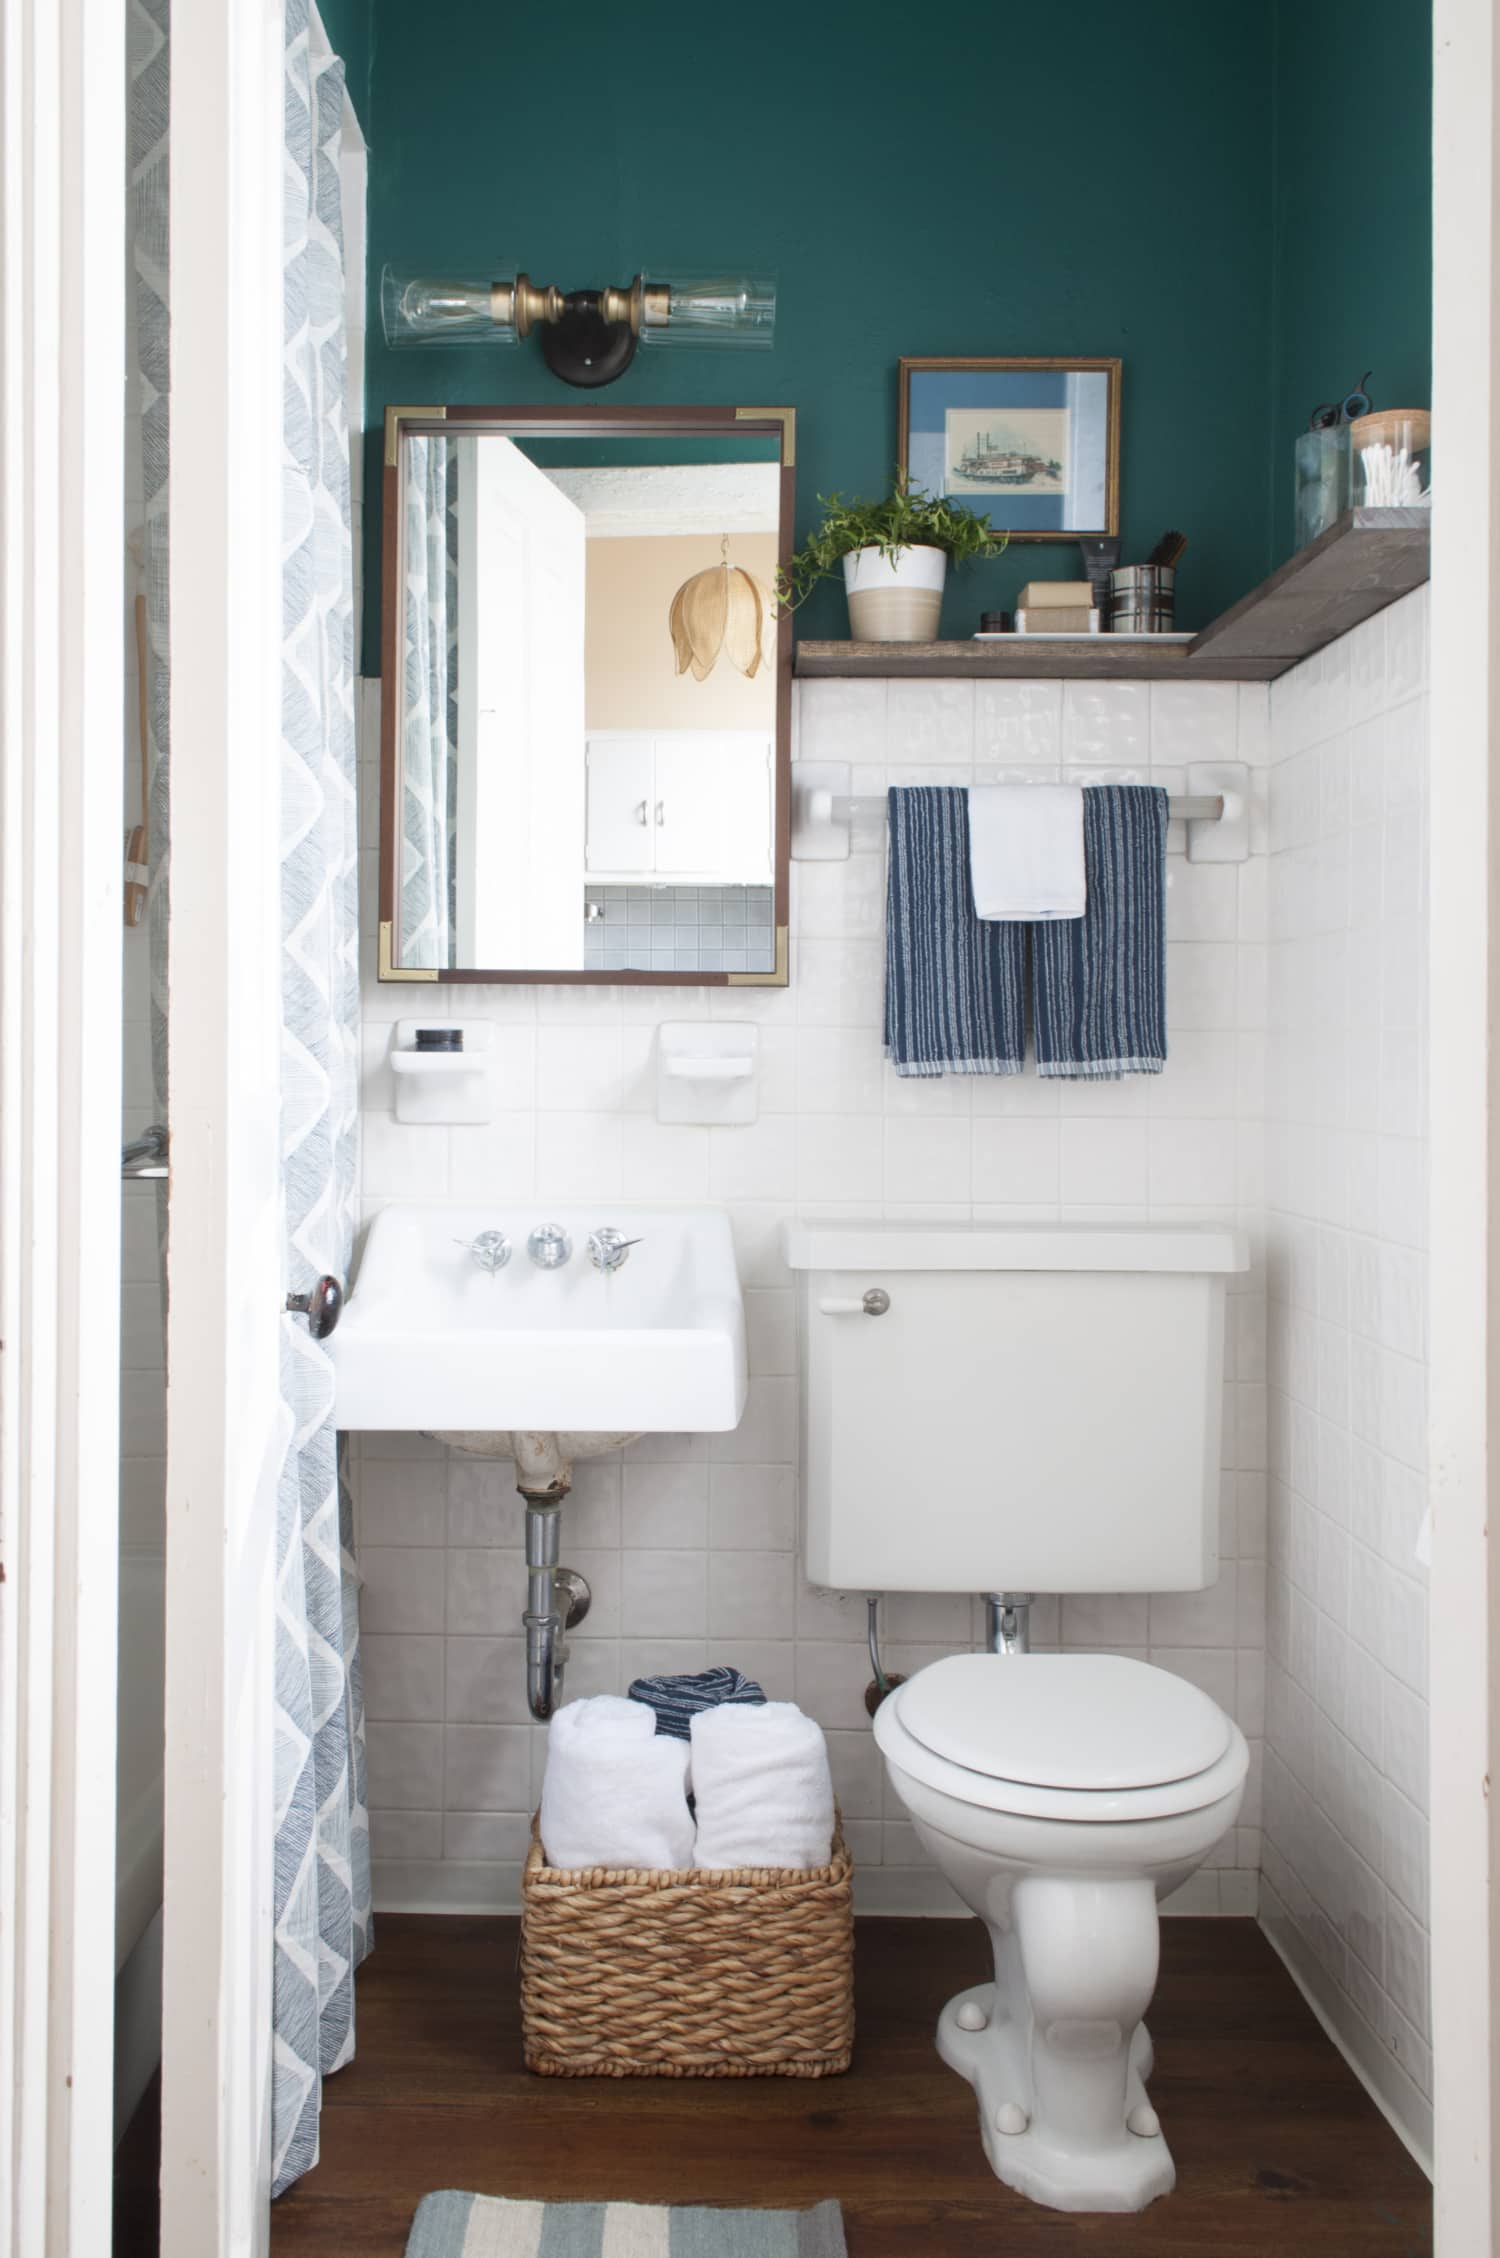 8 Stylish Solutions for Your Totally Icky Rental Bathroom ...